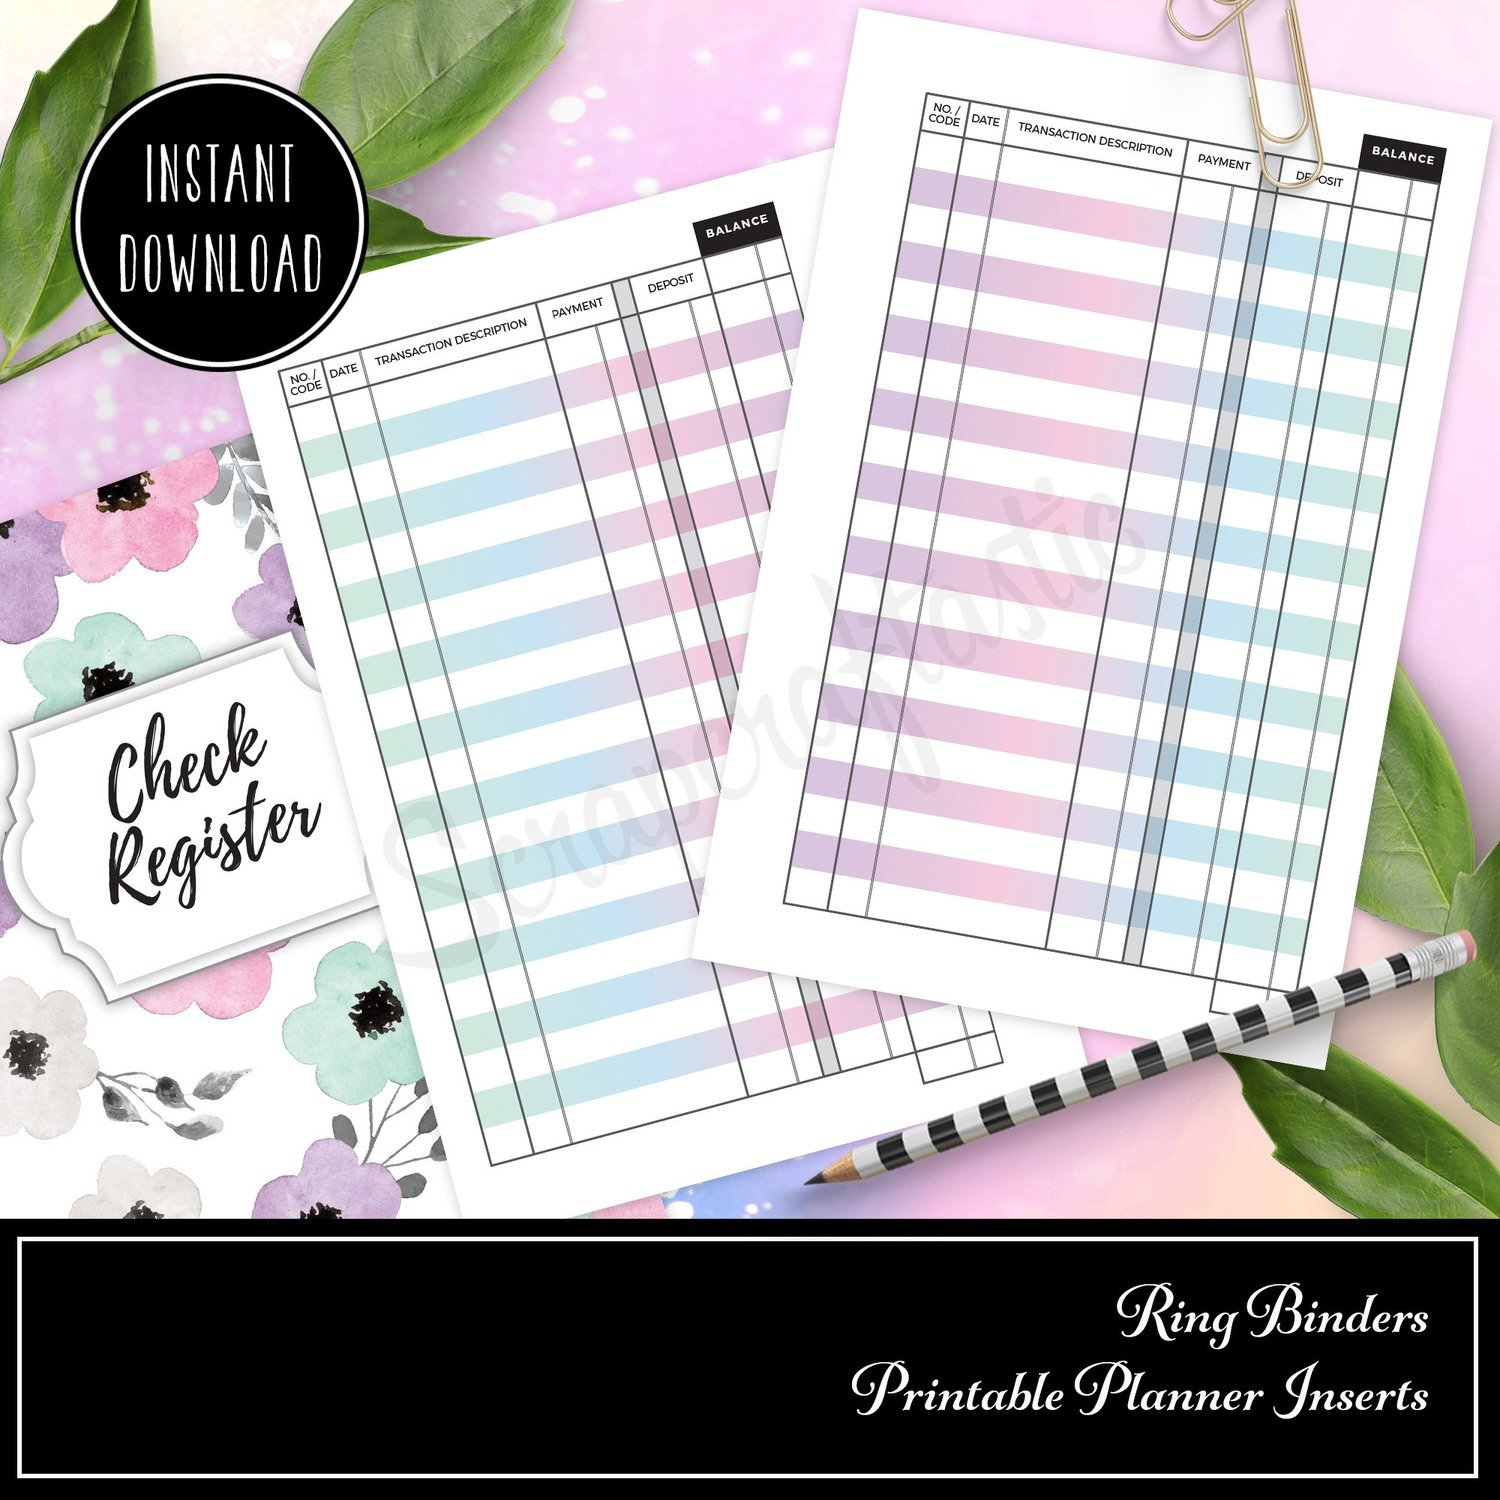 POCKET RINGS - Check Register Binder Rings Printable Insert